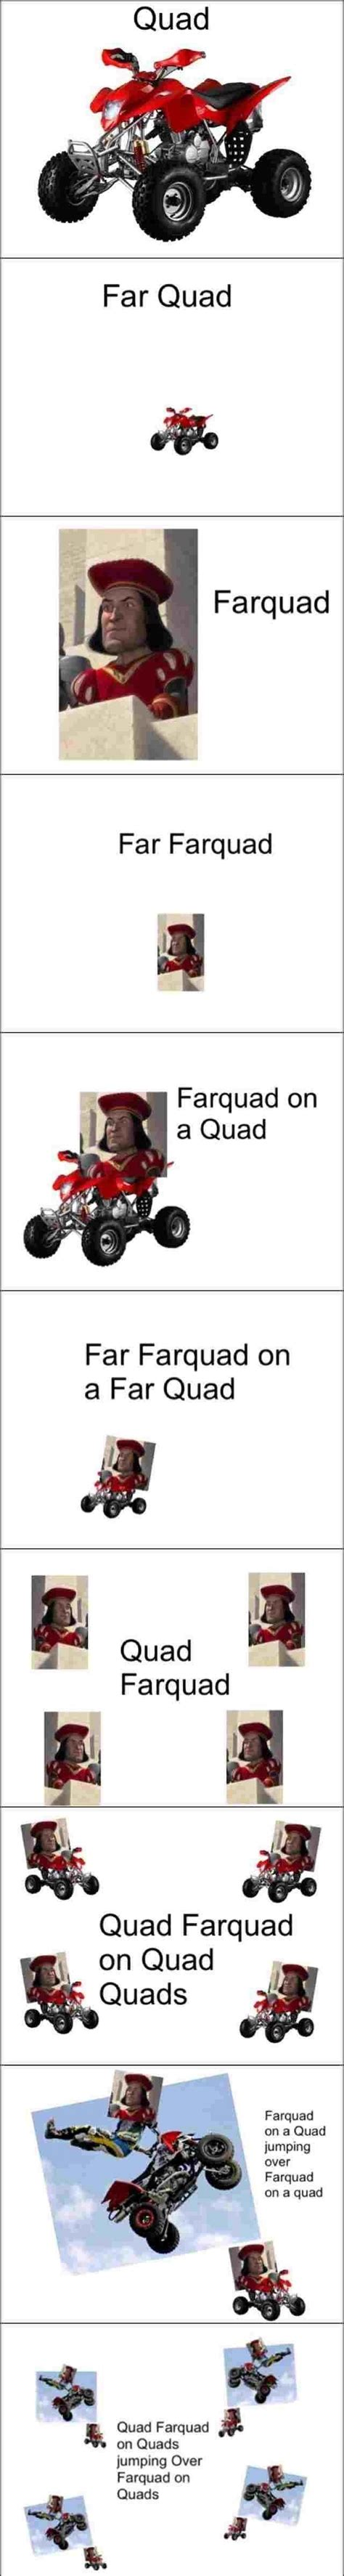 Quad Memes - the gallery for gt quad memes